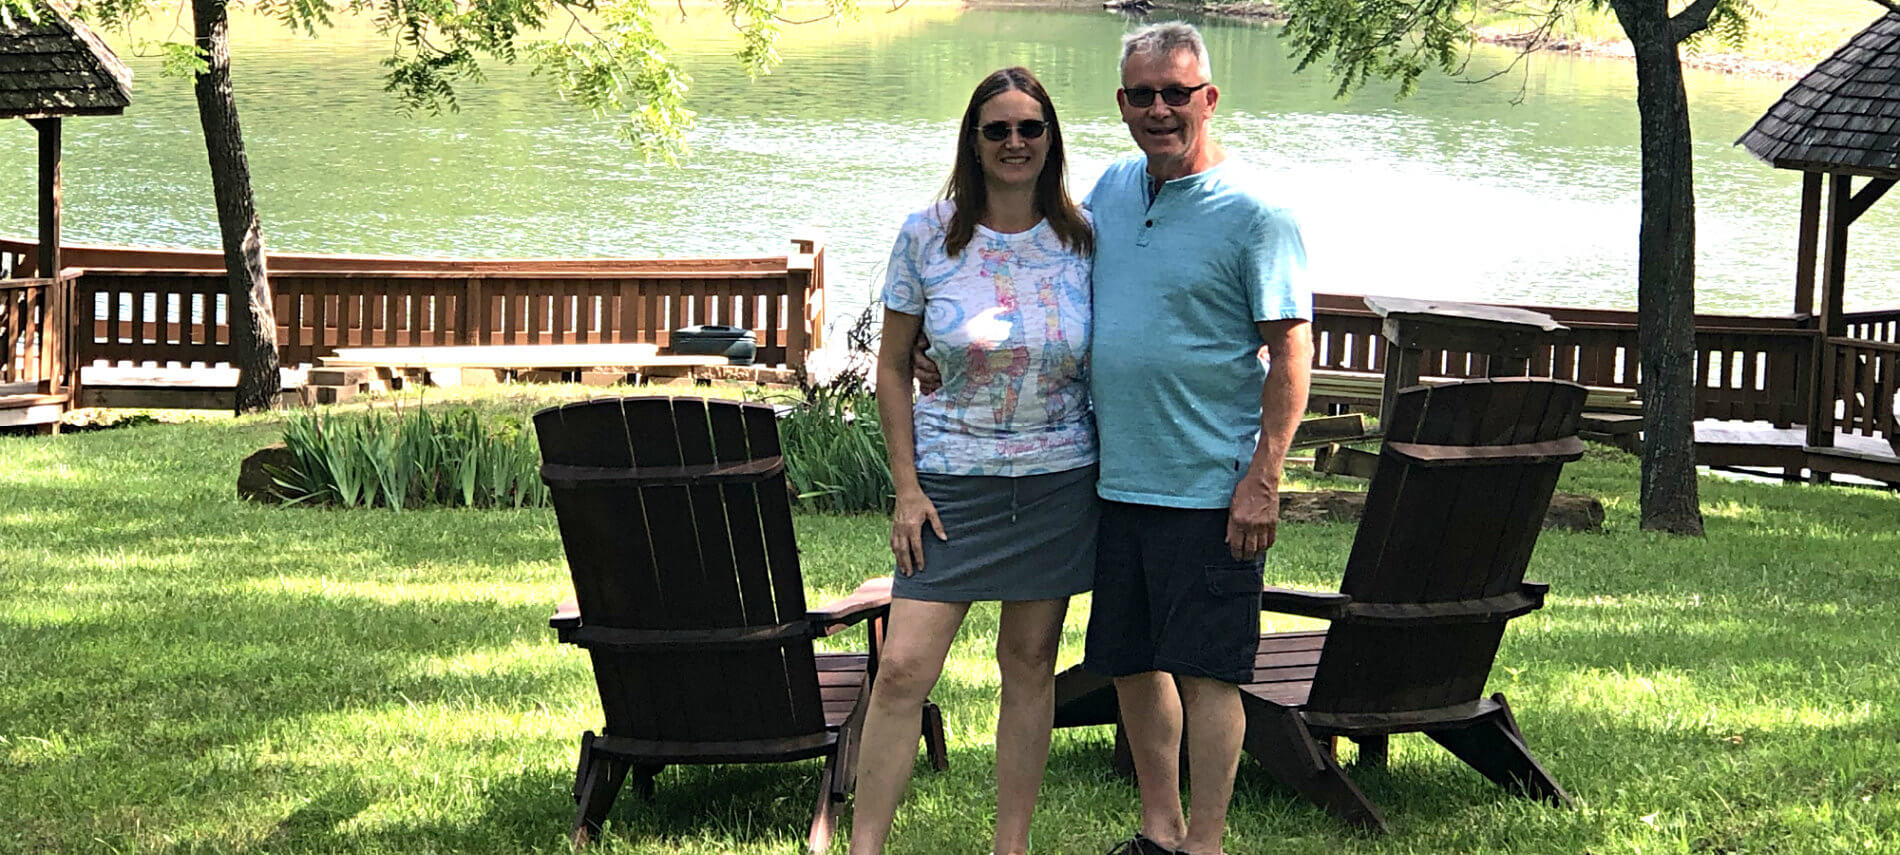 Innkeepers Karl and Rebecca standing by two lounge chairs in the lawn with the pond in the background